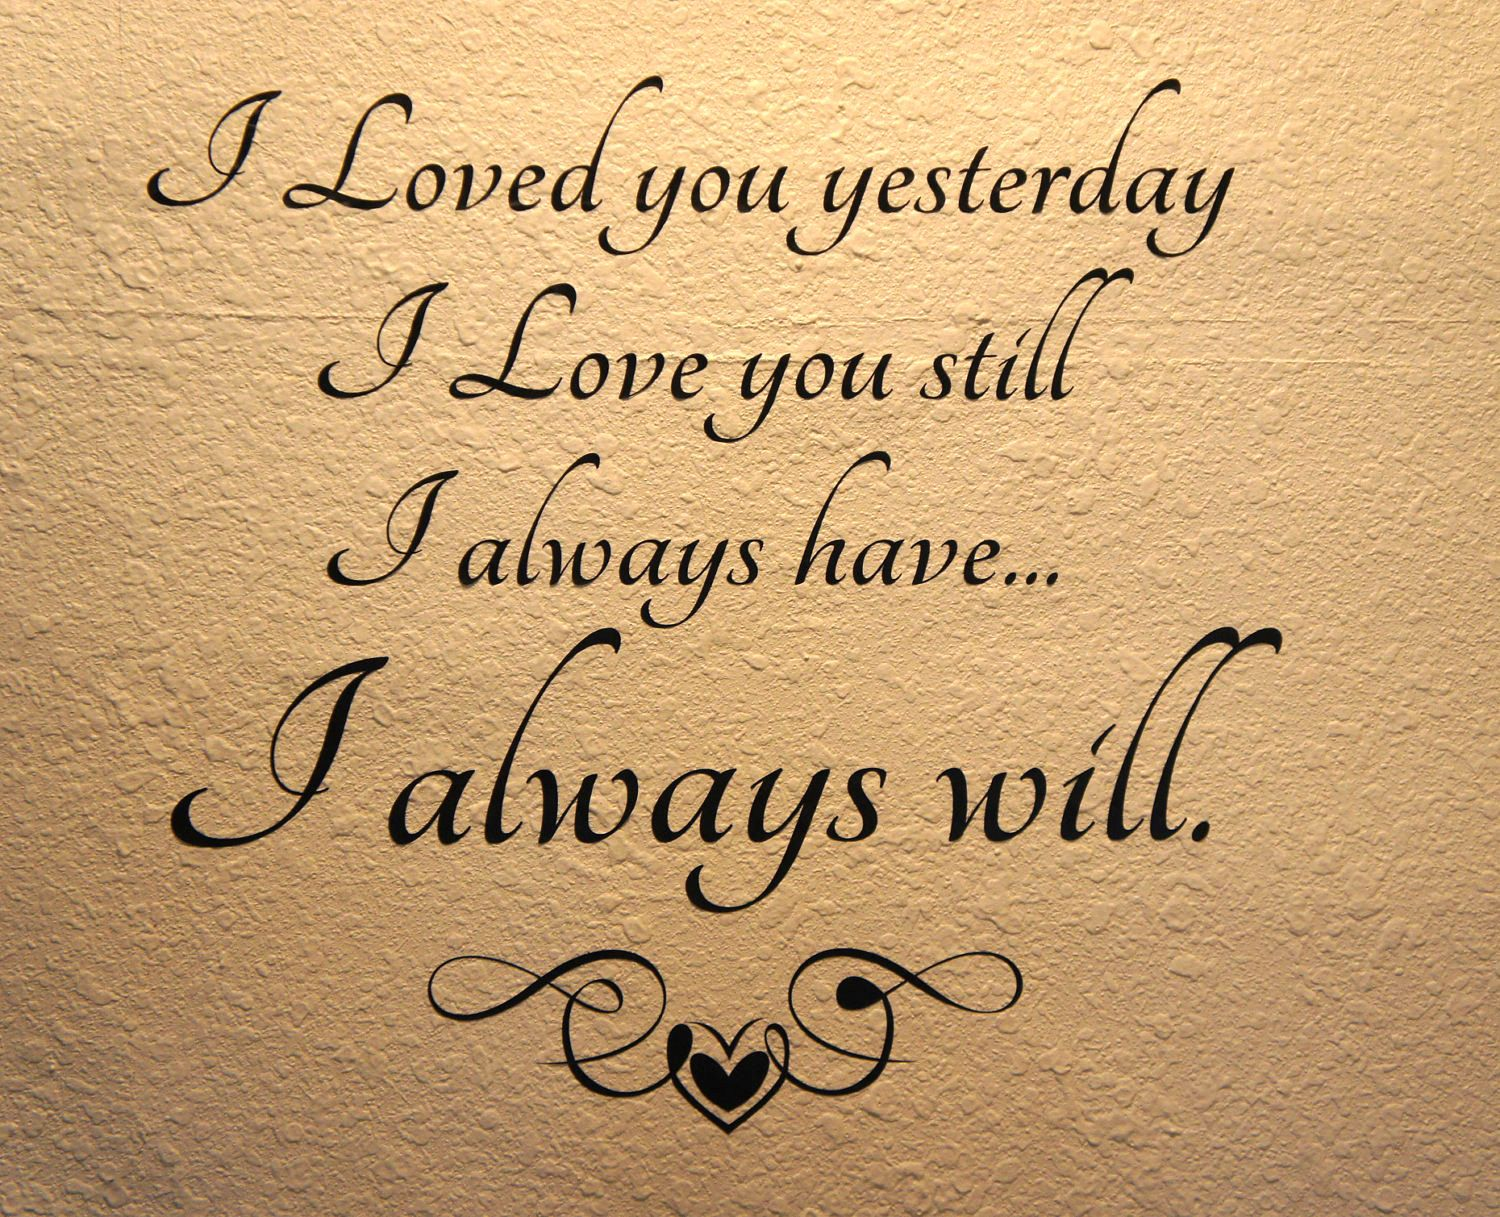 I Loved You Yesterday I Love You Still I Always Have I Always Will